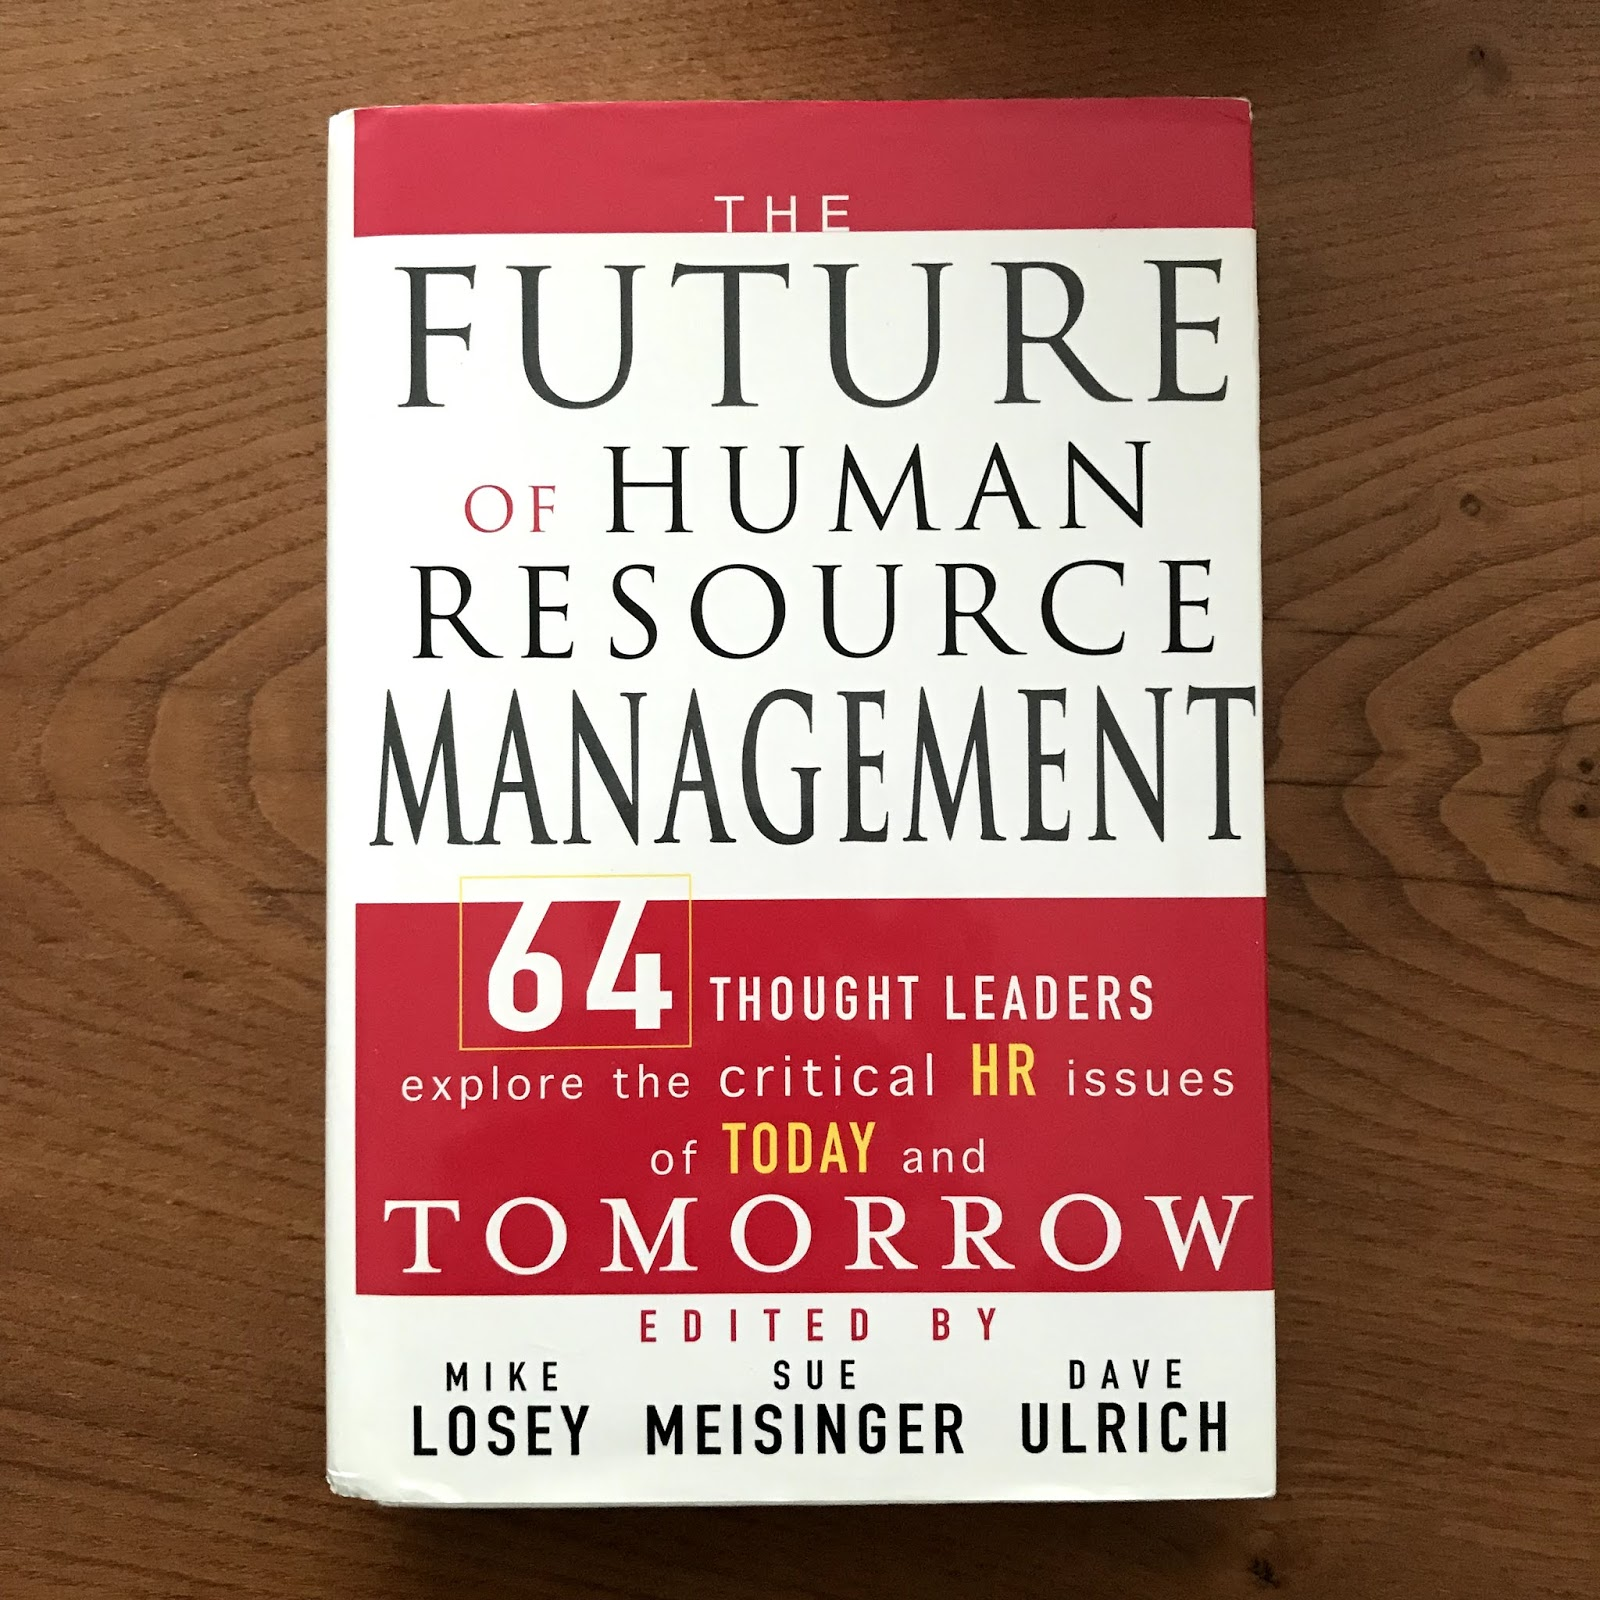 The Future of Human Resource Management